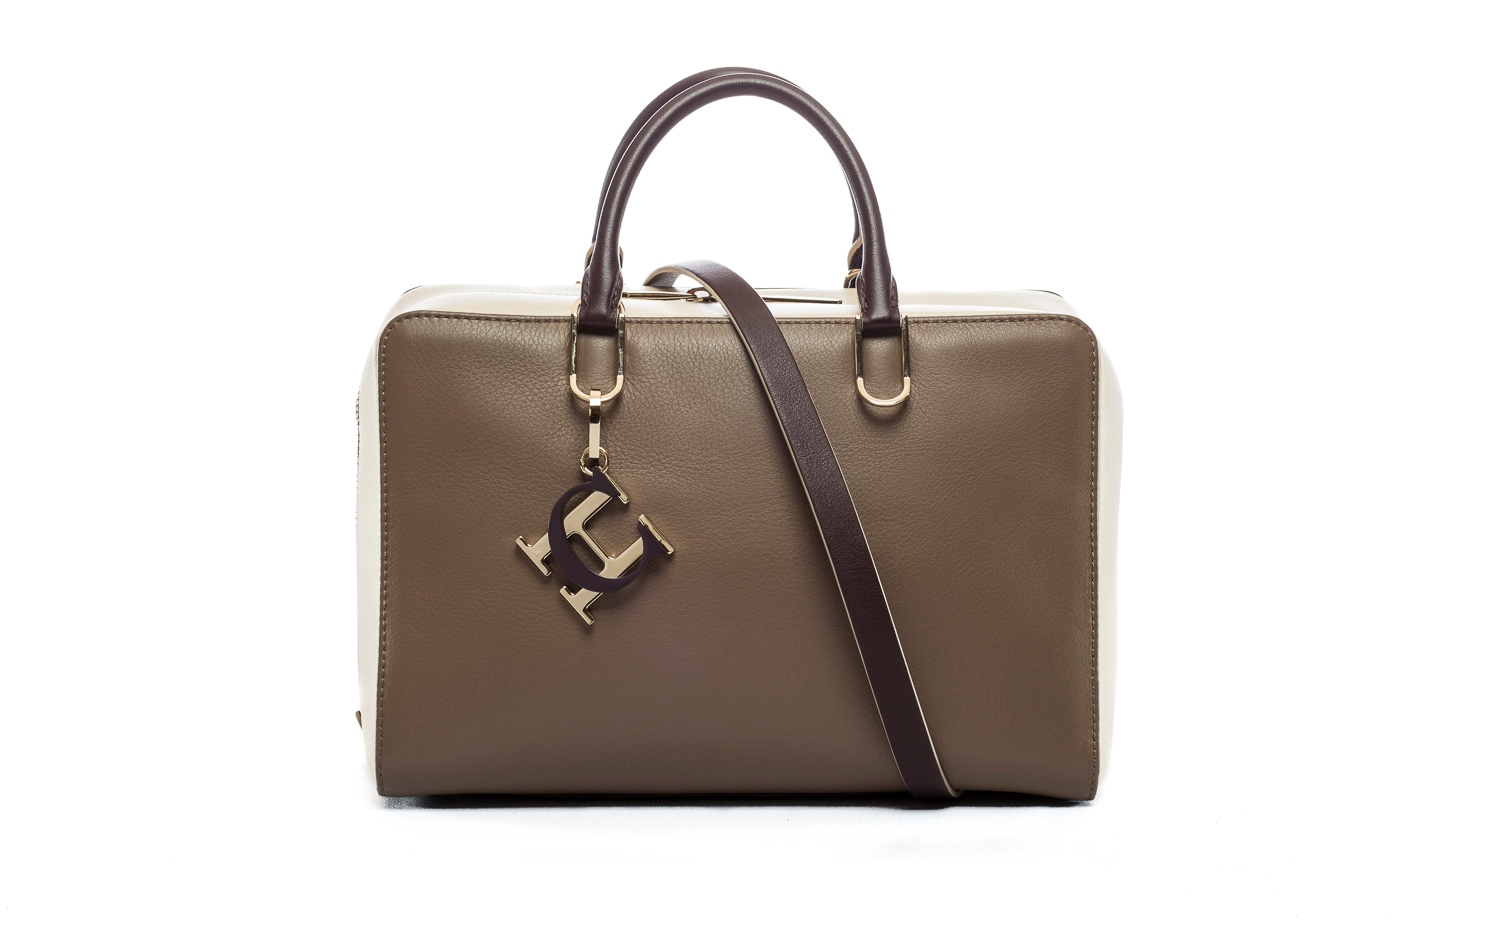 CH Carolina Herrera: Duke in Greco Taupe/Magnolia/Ruby